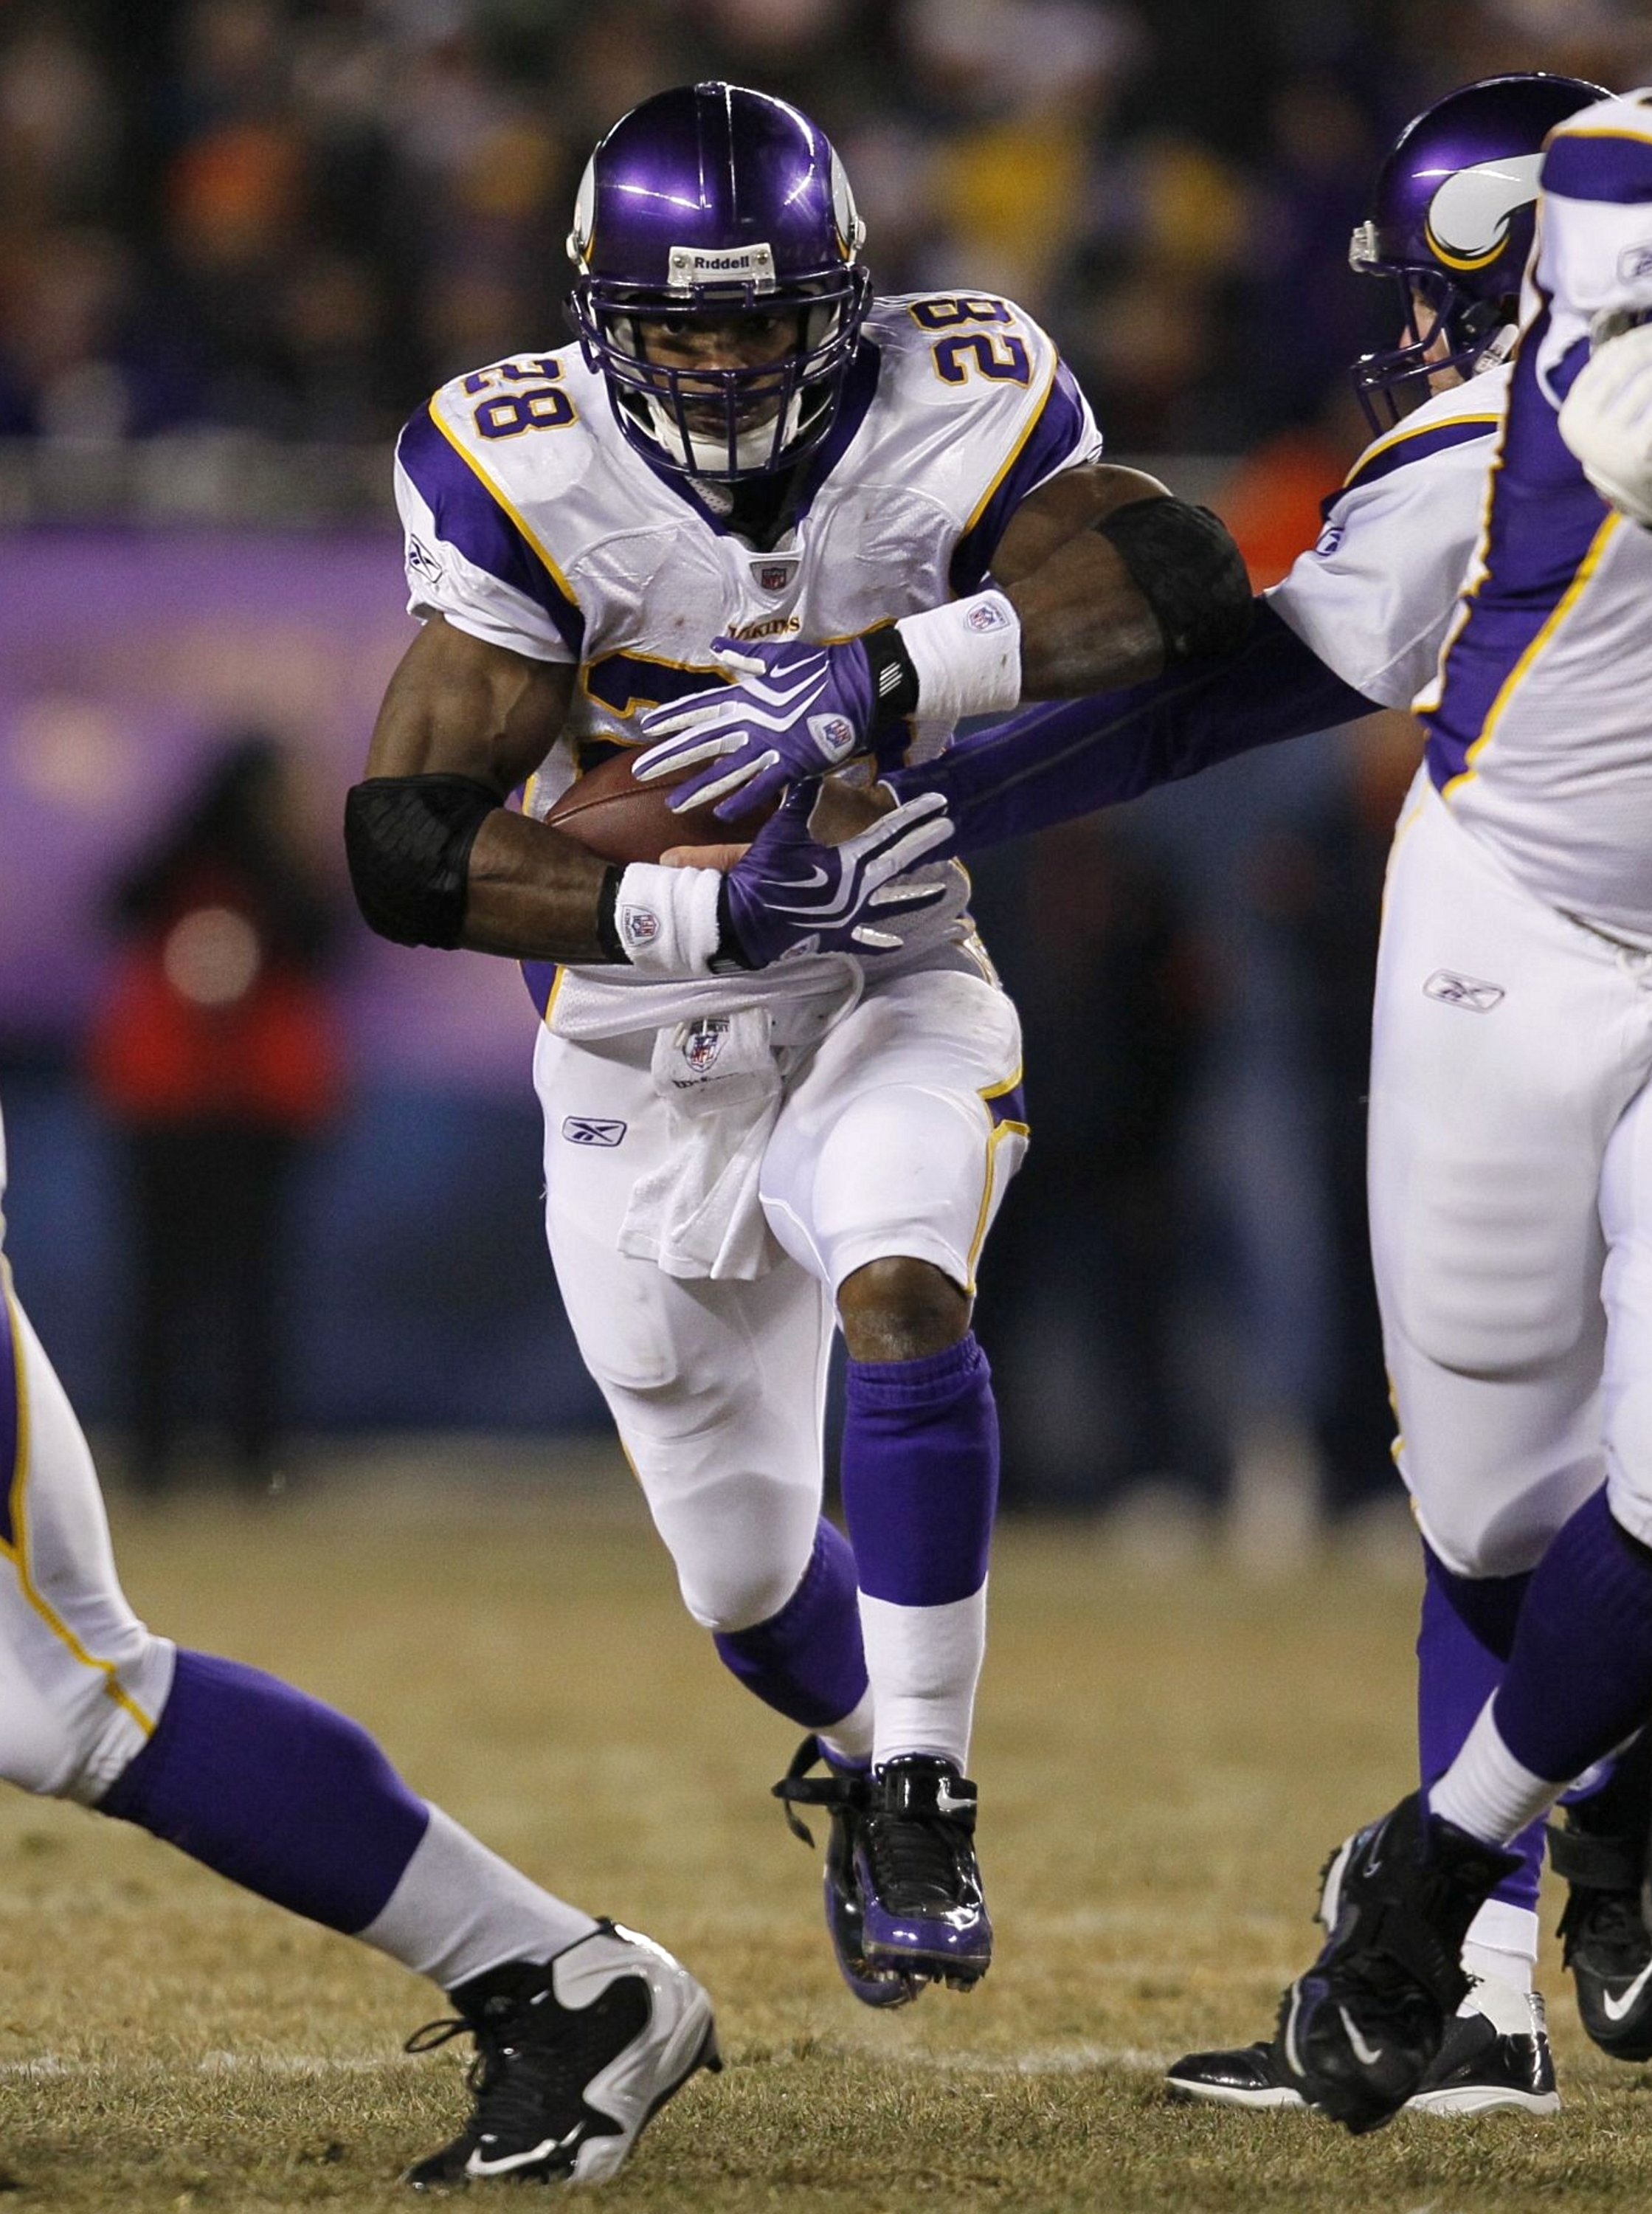 CHICAGO - DECEMBER 28:  Adrian Peterson #28 of the Minnesota Vikings runs the ball against the Chicago Bears in the first half at Soldier Field on December 28, 2009 in Chicago, Illinois. (Photo by Jonathan Daniel/Getty Images)